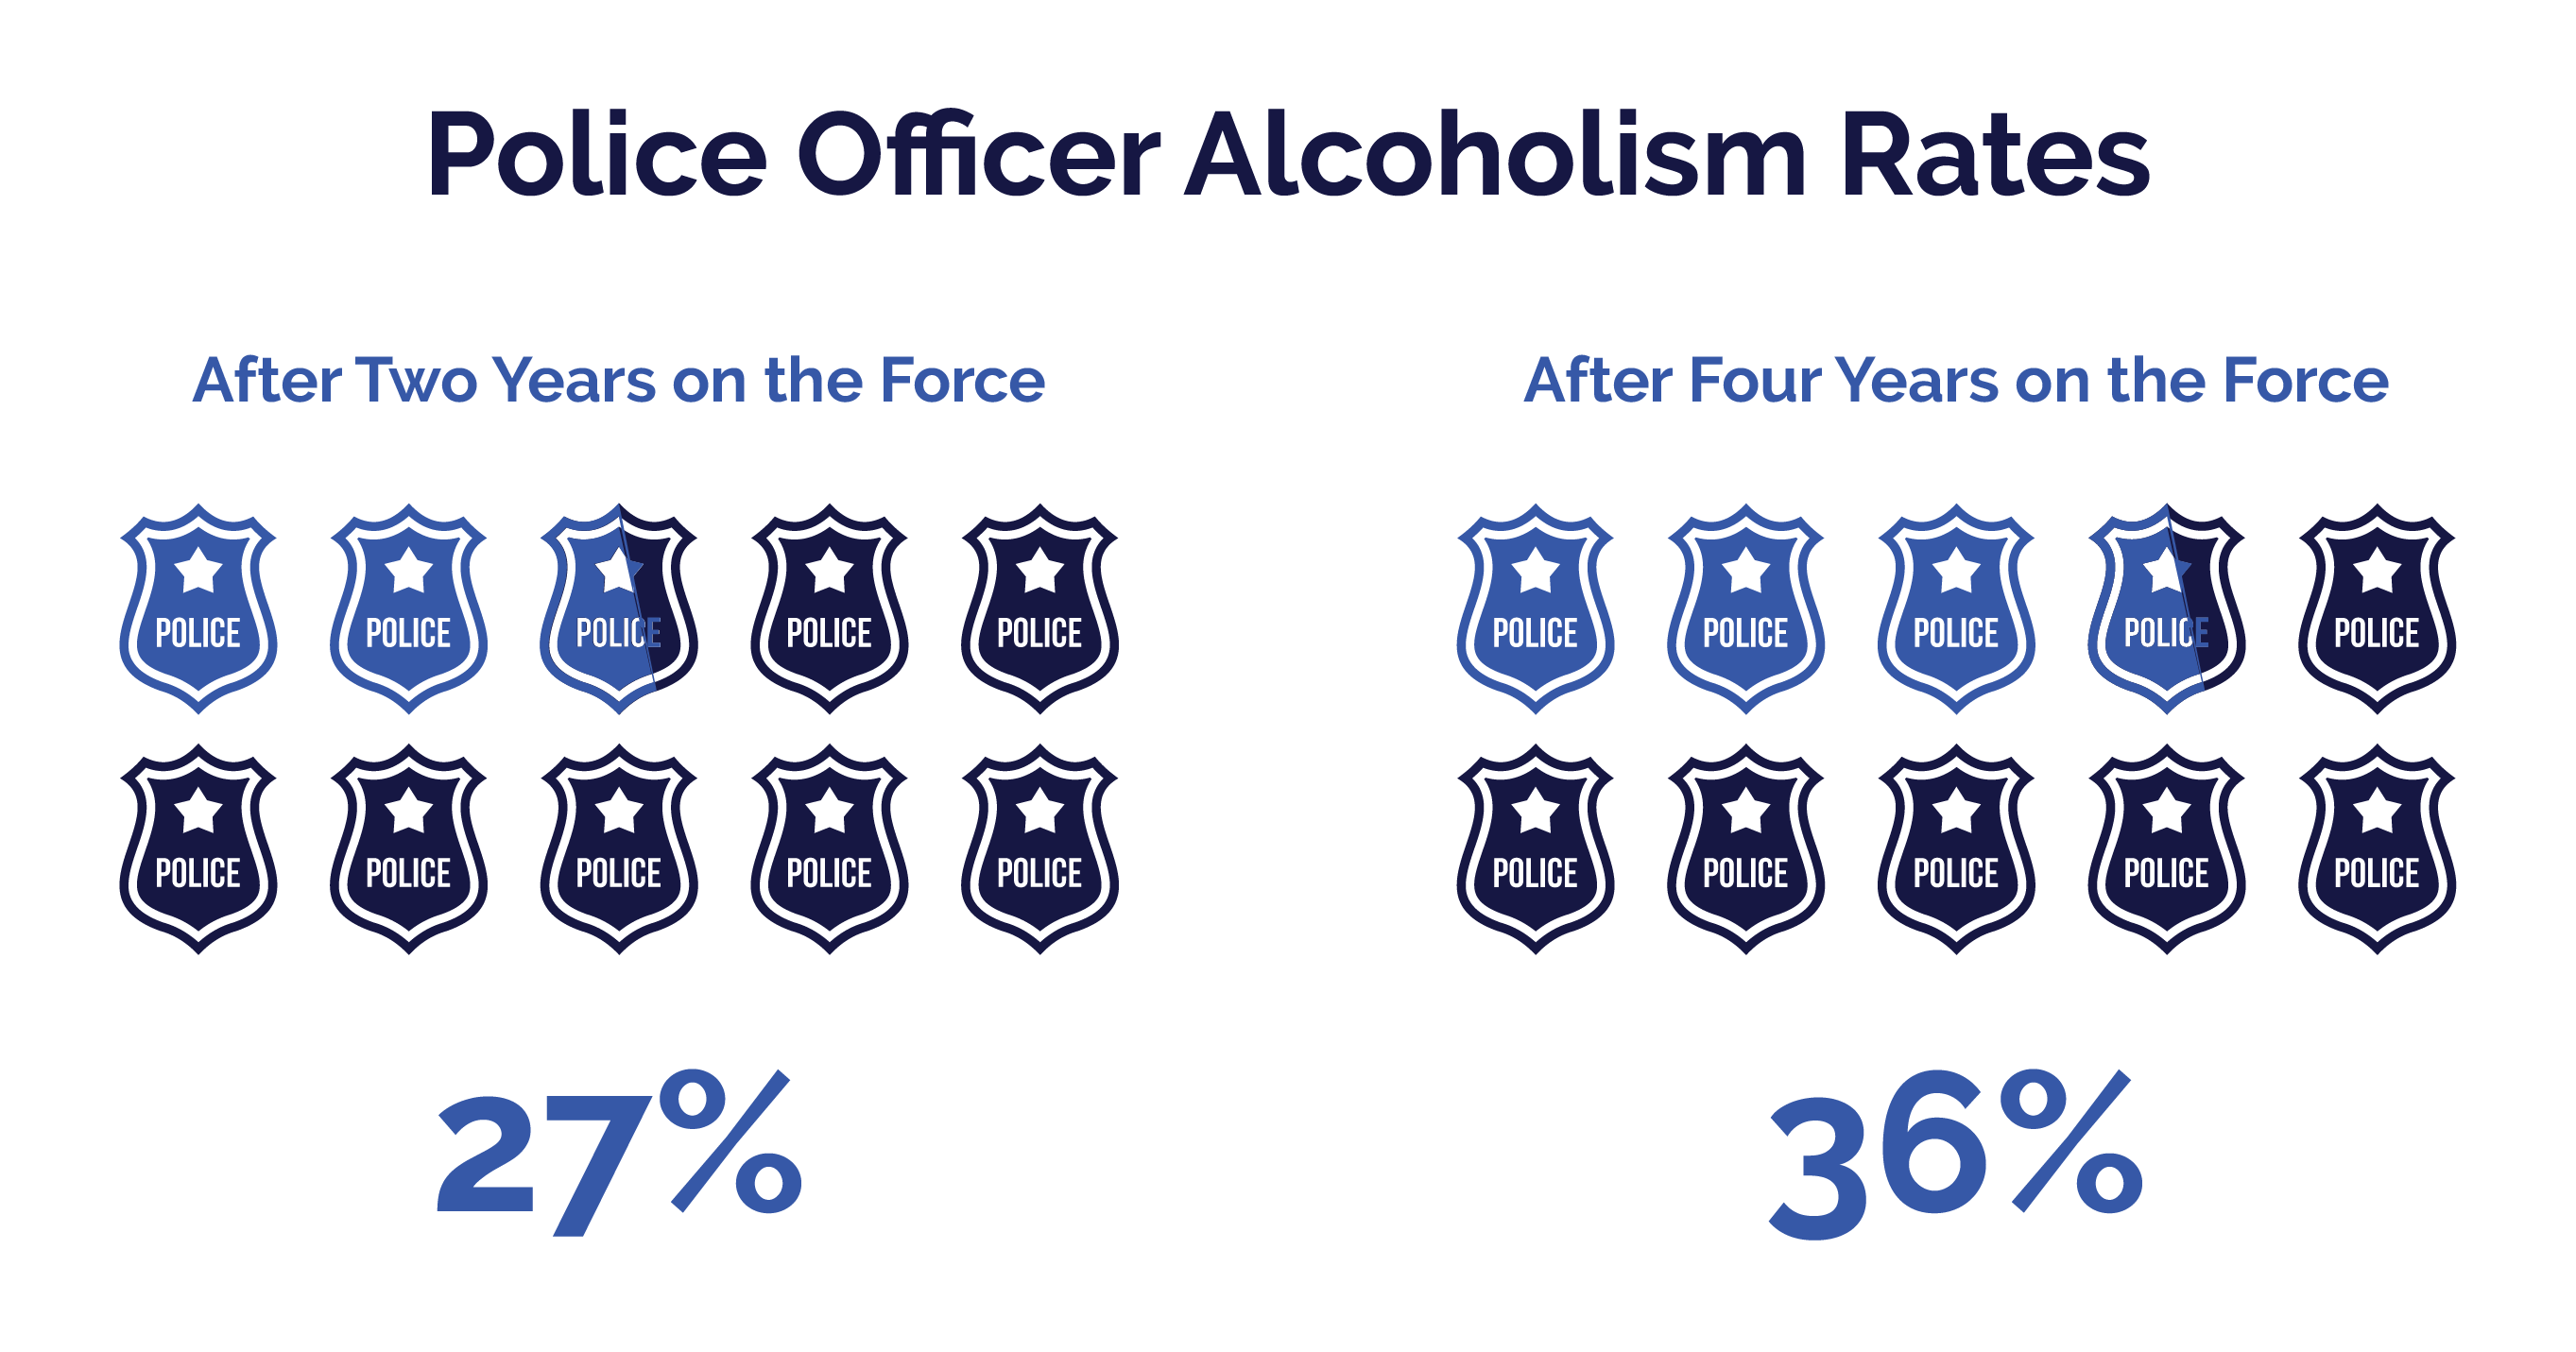 First Responders Guide - Alcoholism Rates